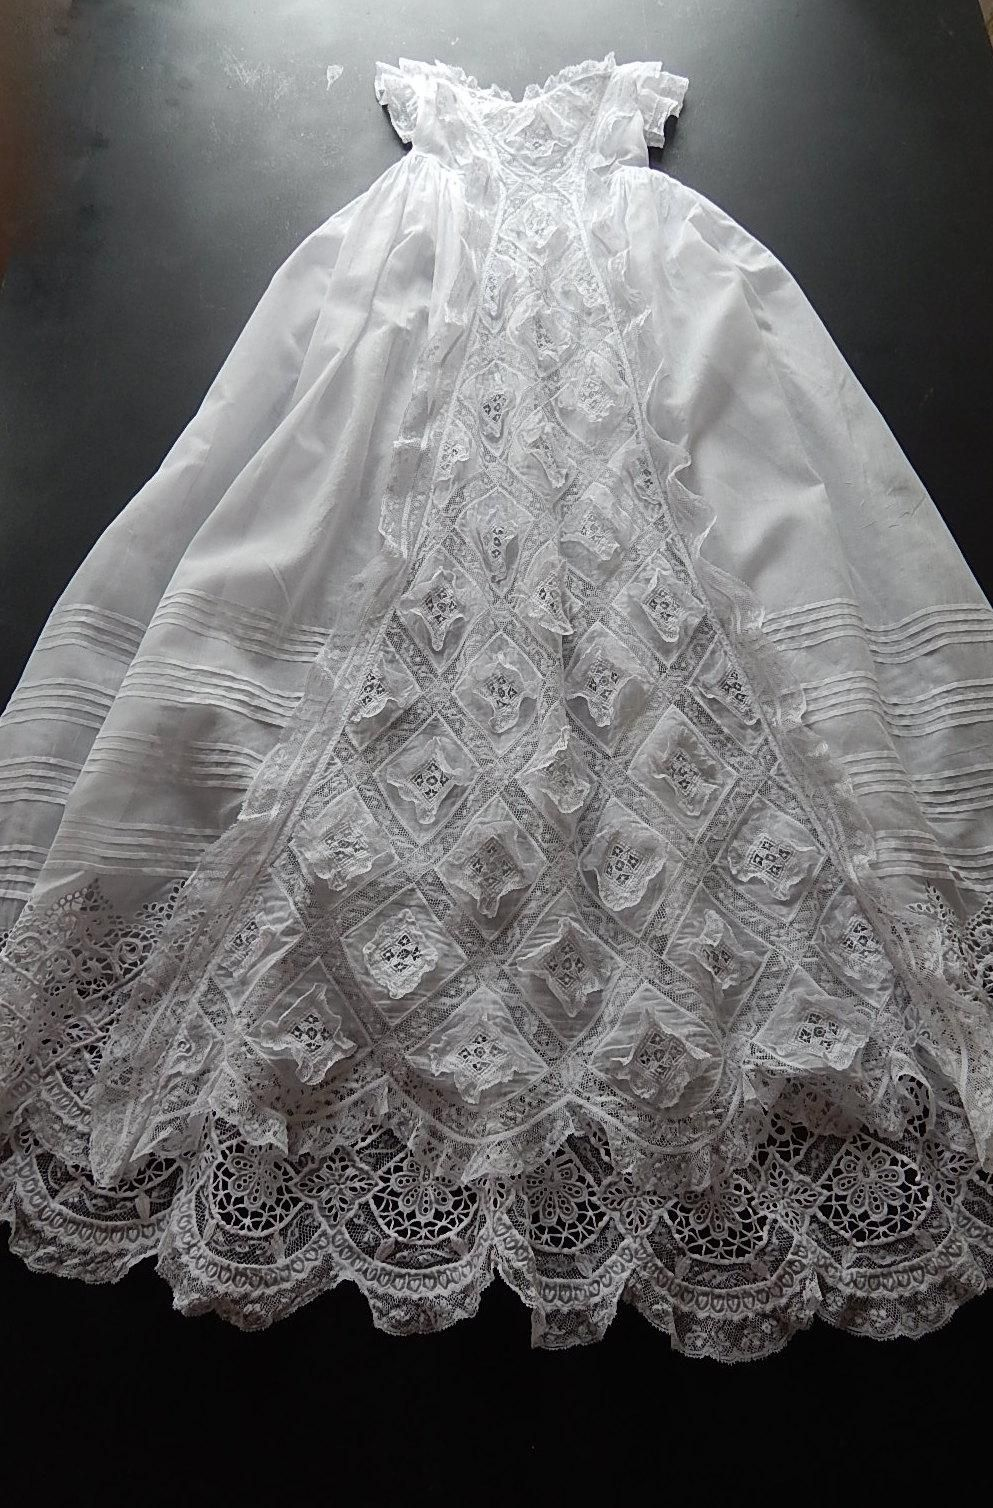 French Handmade Christening Gown With Exceptional Lace And